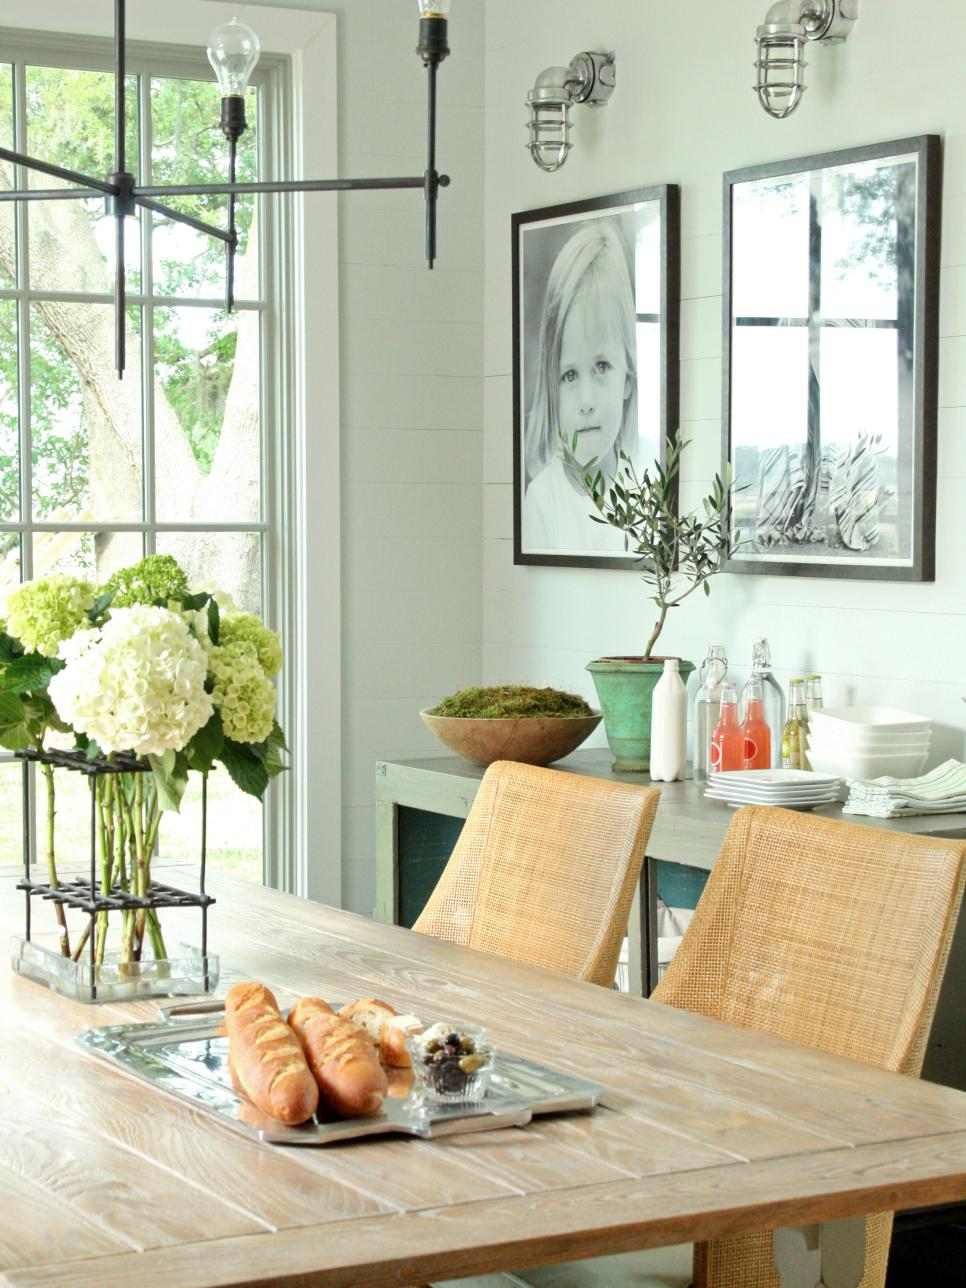 Dining Room Accessories Of 15 Dining Room Decorating Ideas Hgtv